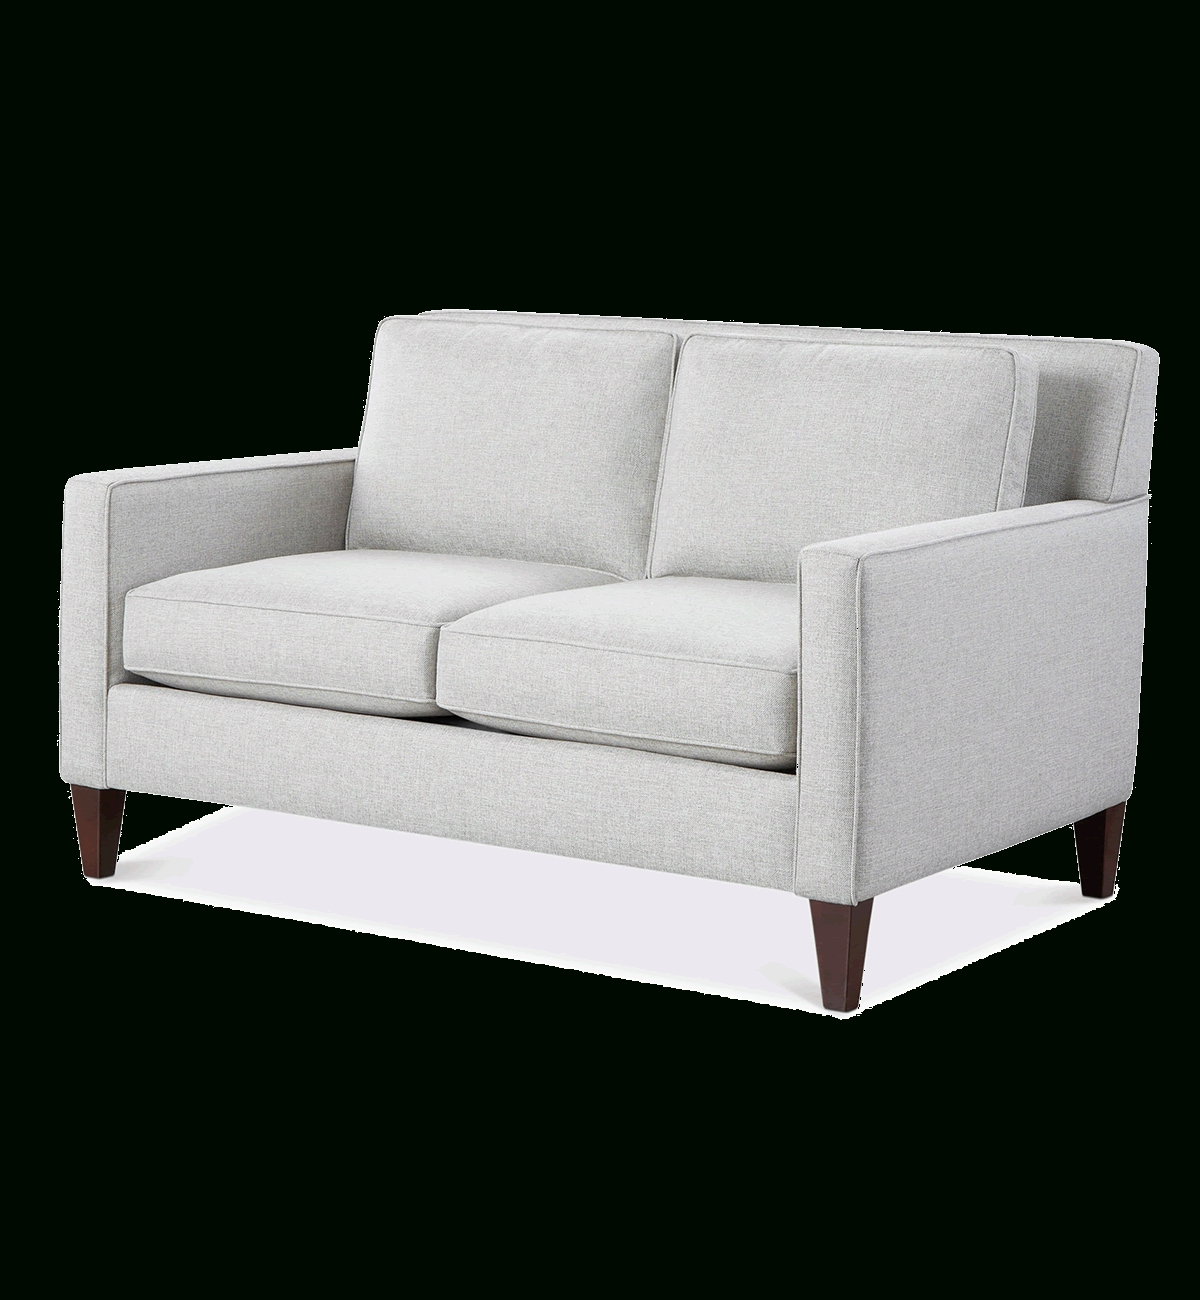 White Couches And Sofas – Macy's Intended For Latest White Sofa Chairs (View 10 of 15)